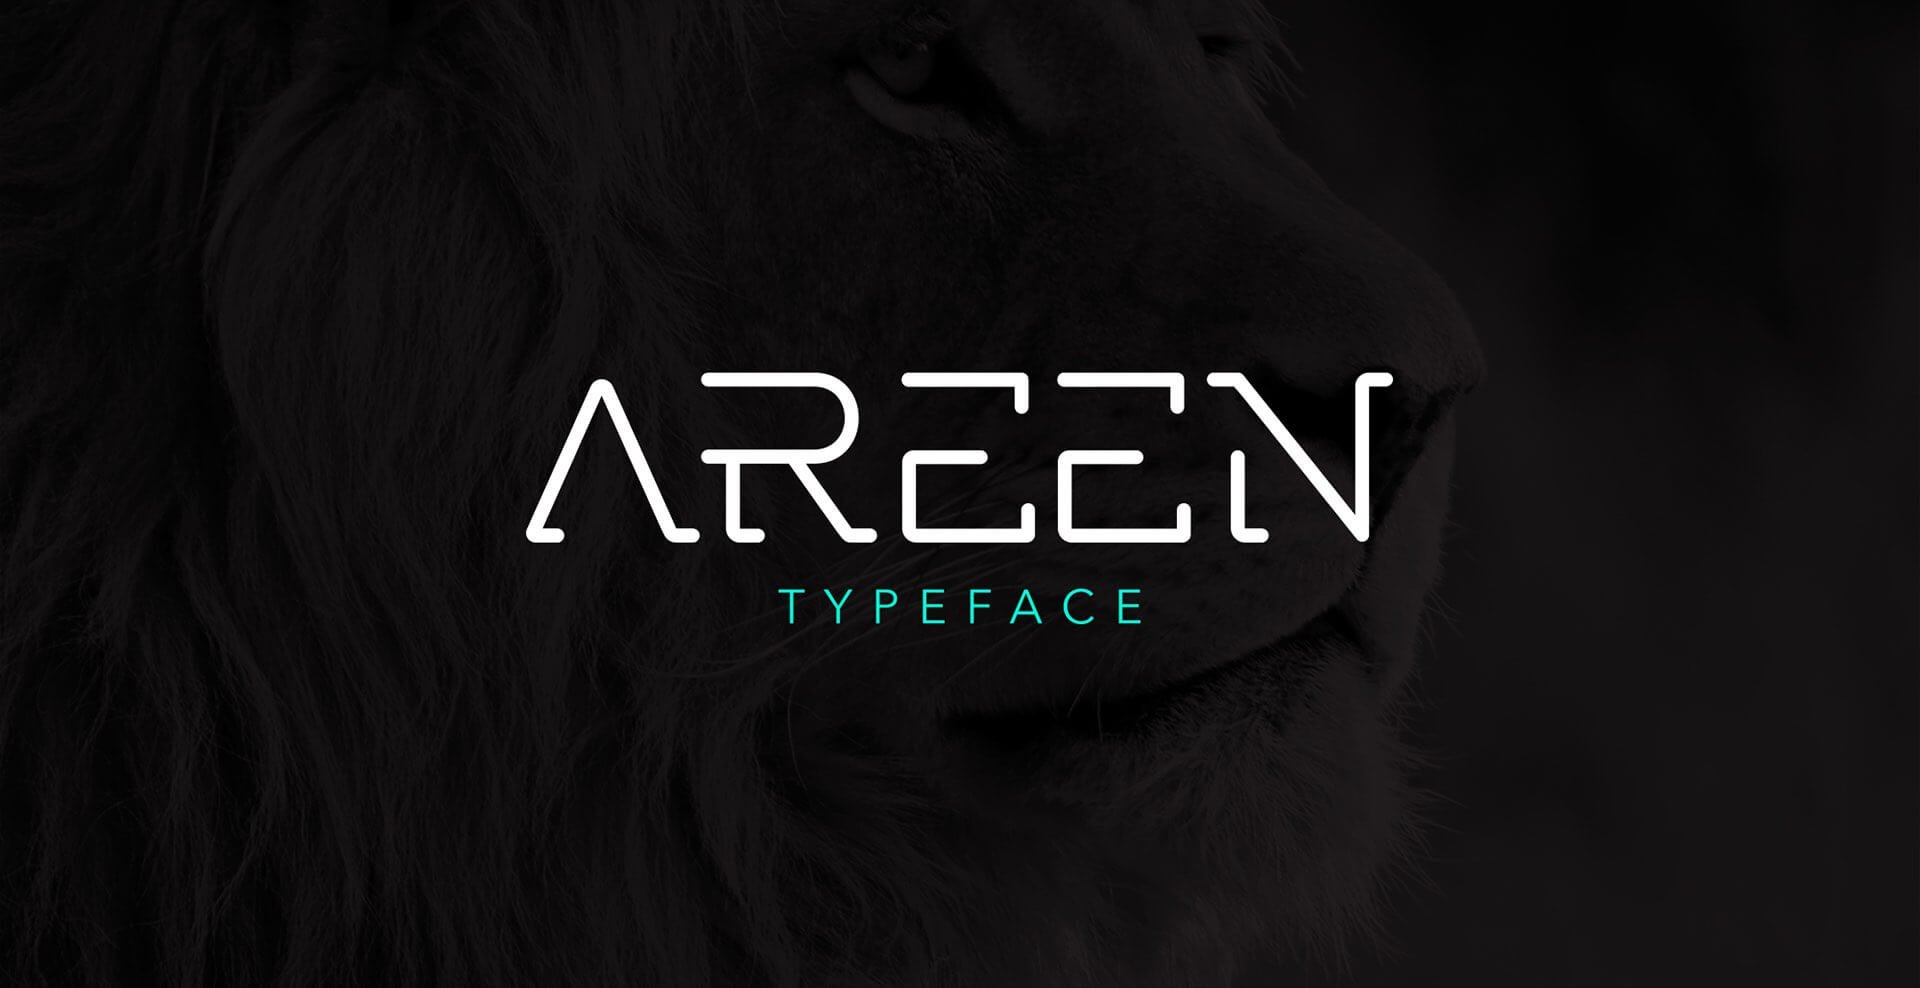 areen